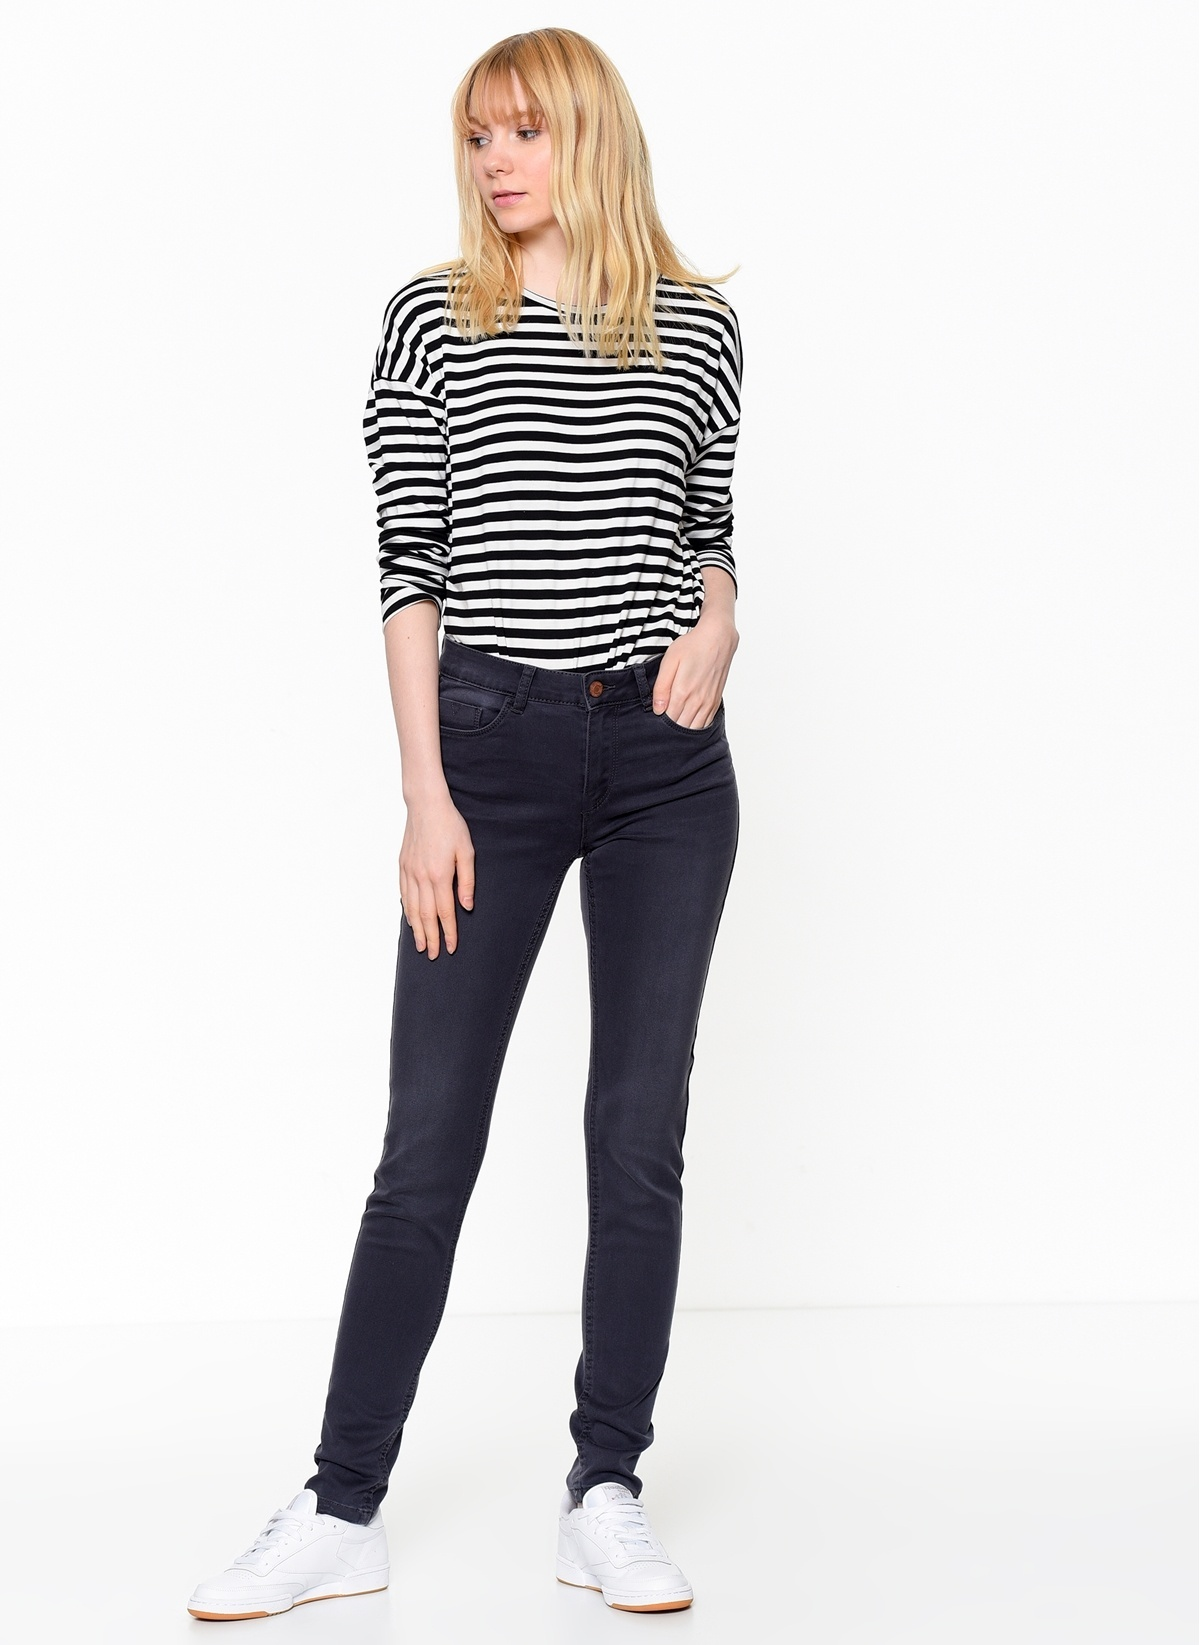 Vero Moda Jean Pantolon | Lucy – Skinny 10166657 Nmextreme Lucy Nw Soft Jeans D – 39.9 TL